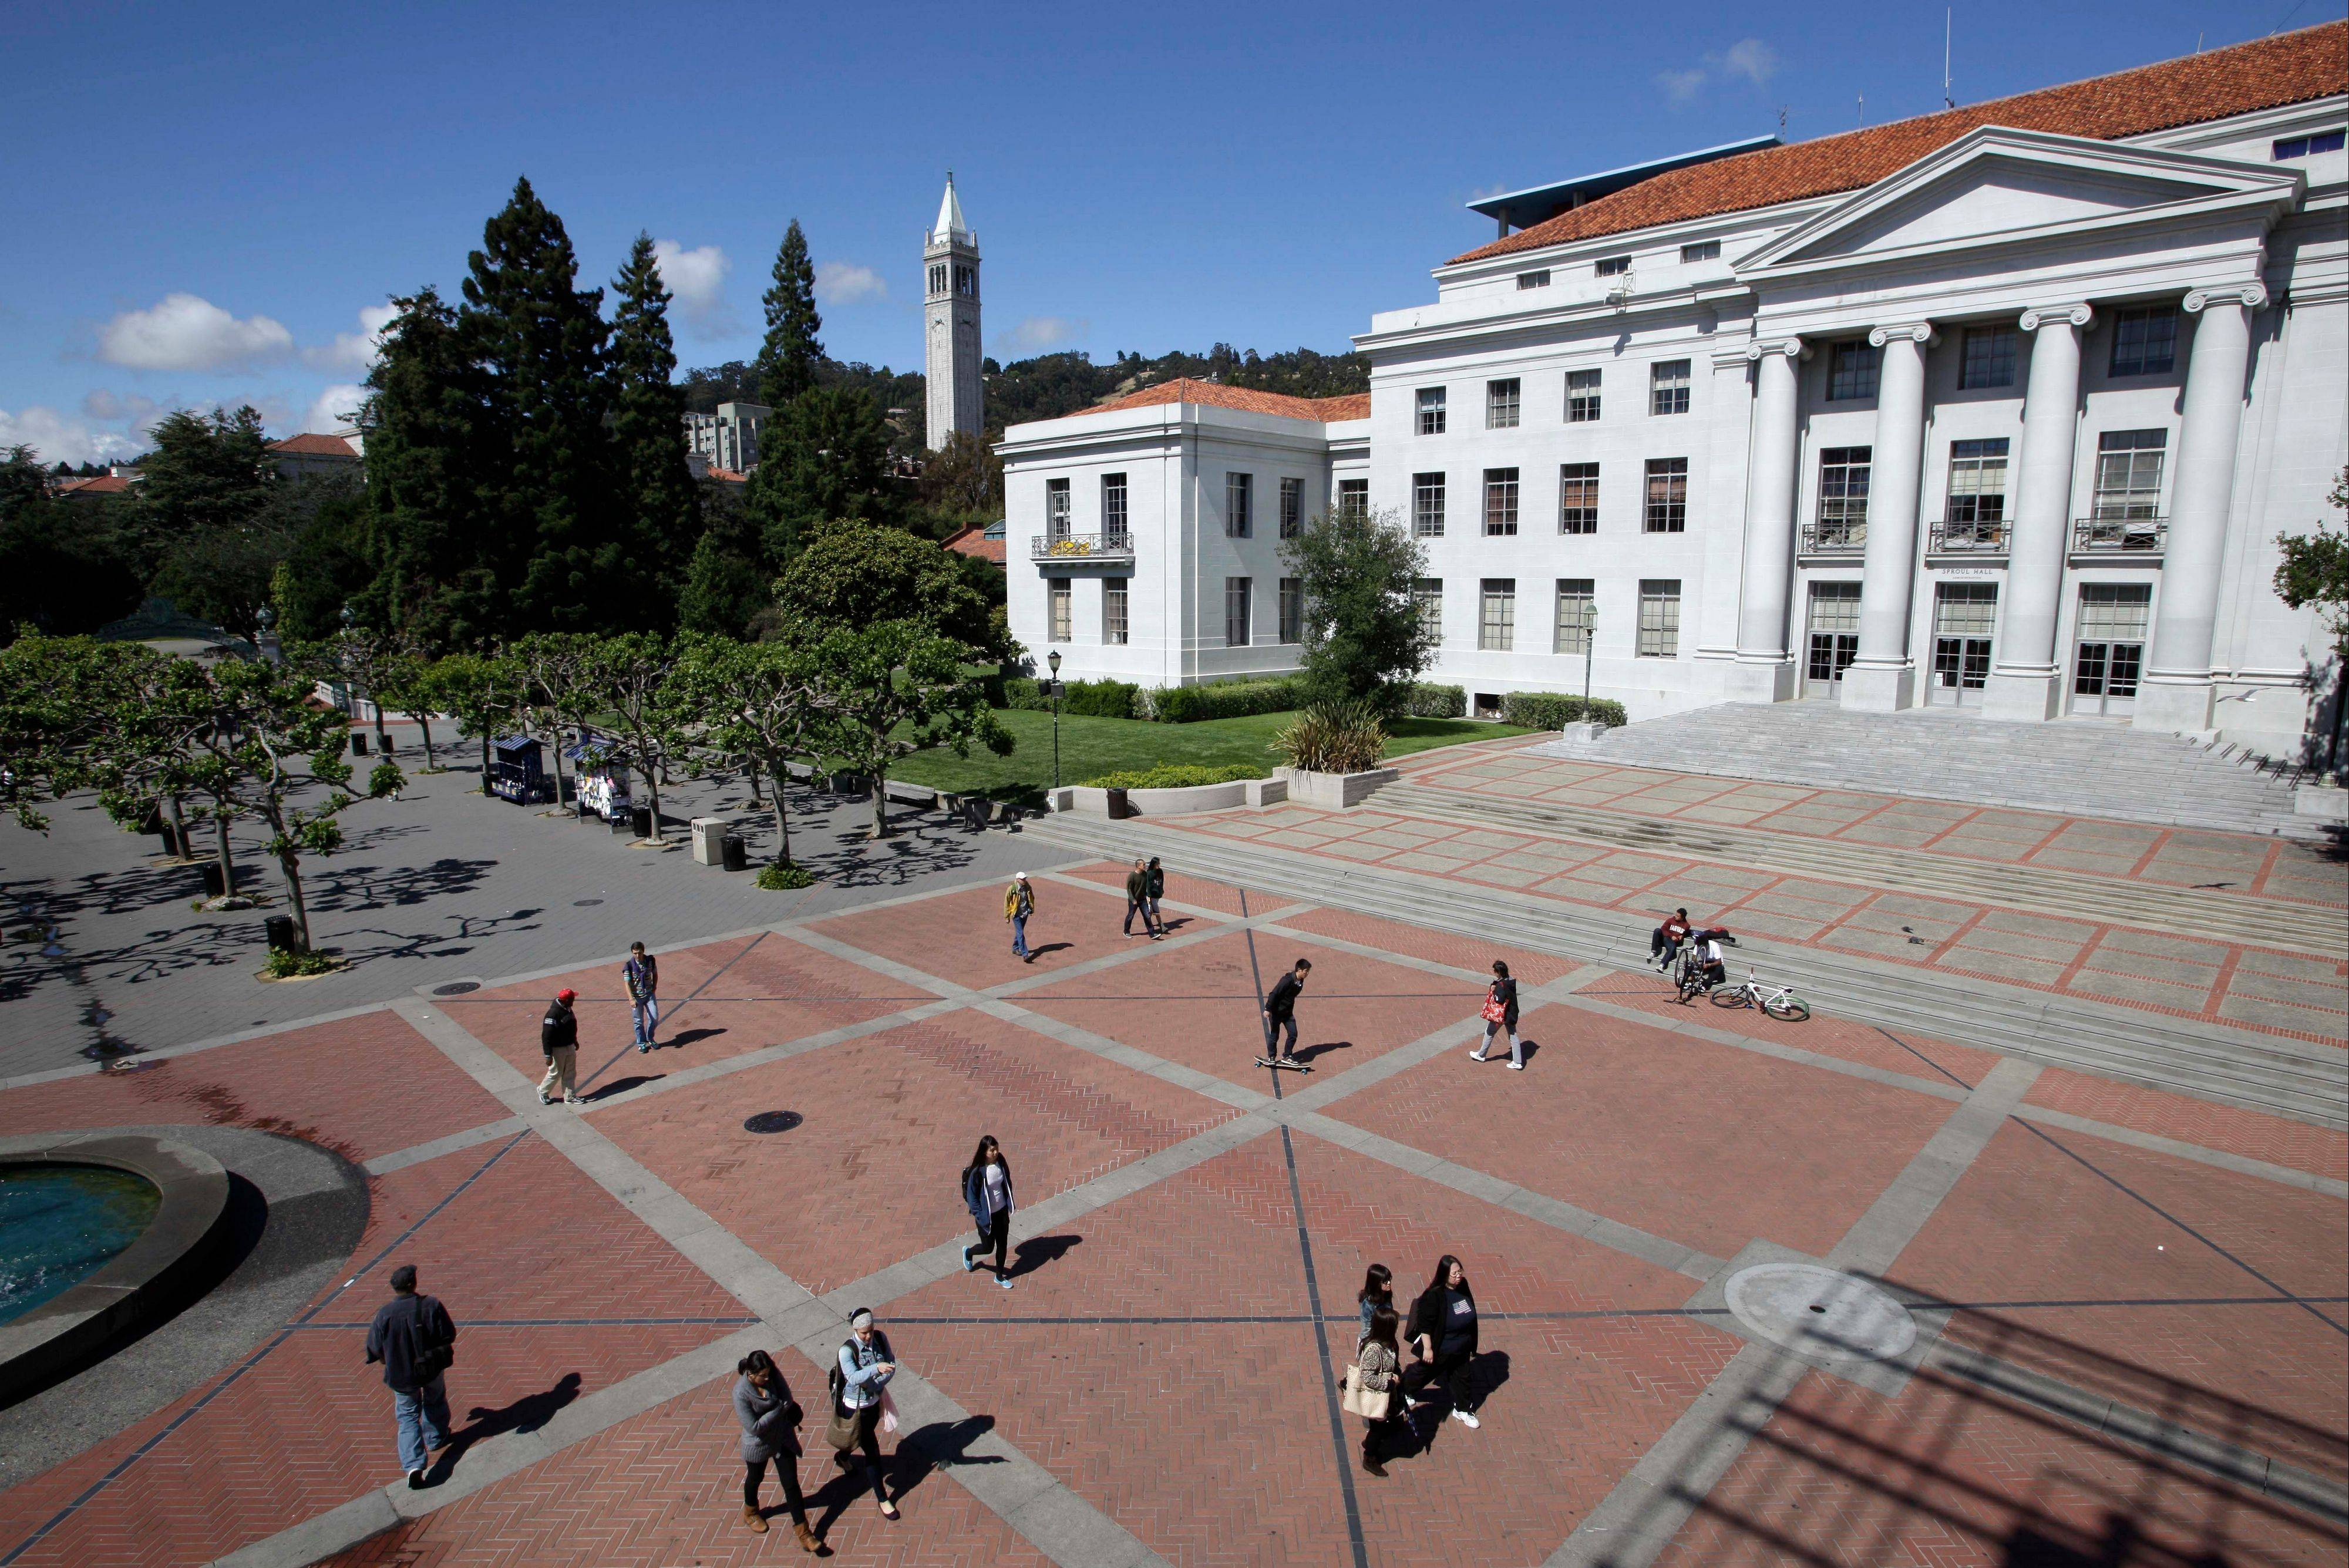 Life is quiet on Sproul Plaza on the University of California, Berkeley campus.